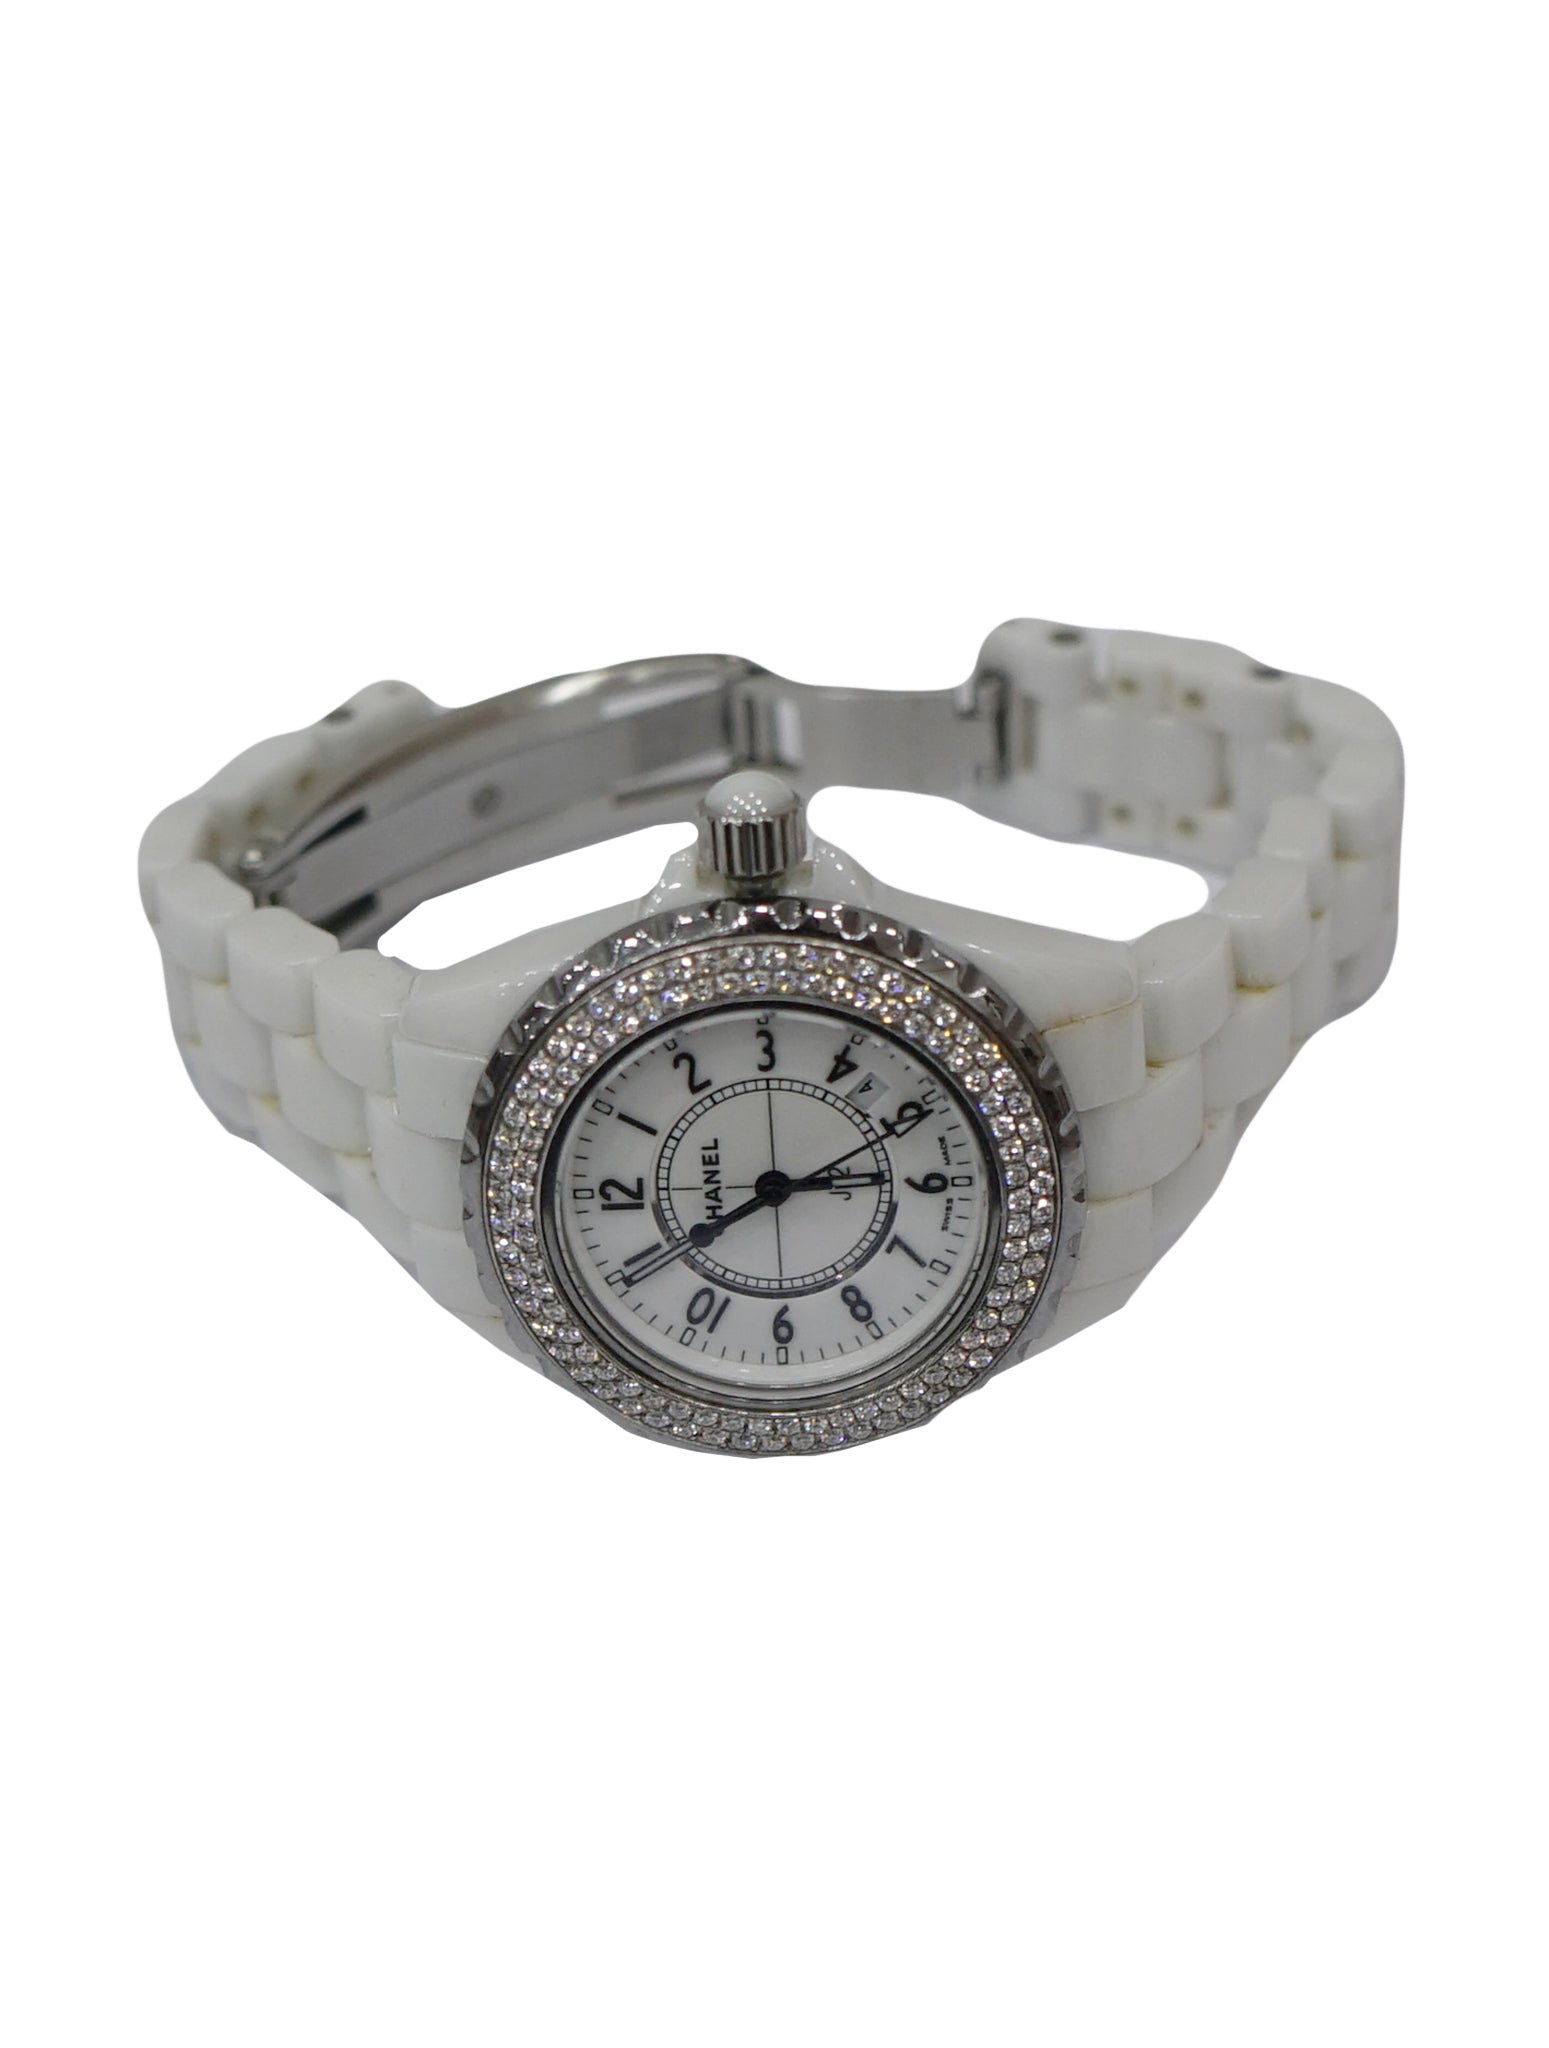 STAINLESS STEEL & CERAMIC DIAMOND J12 WATCH